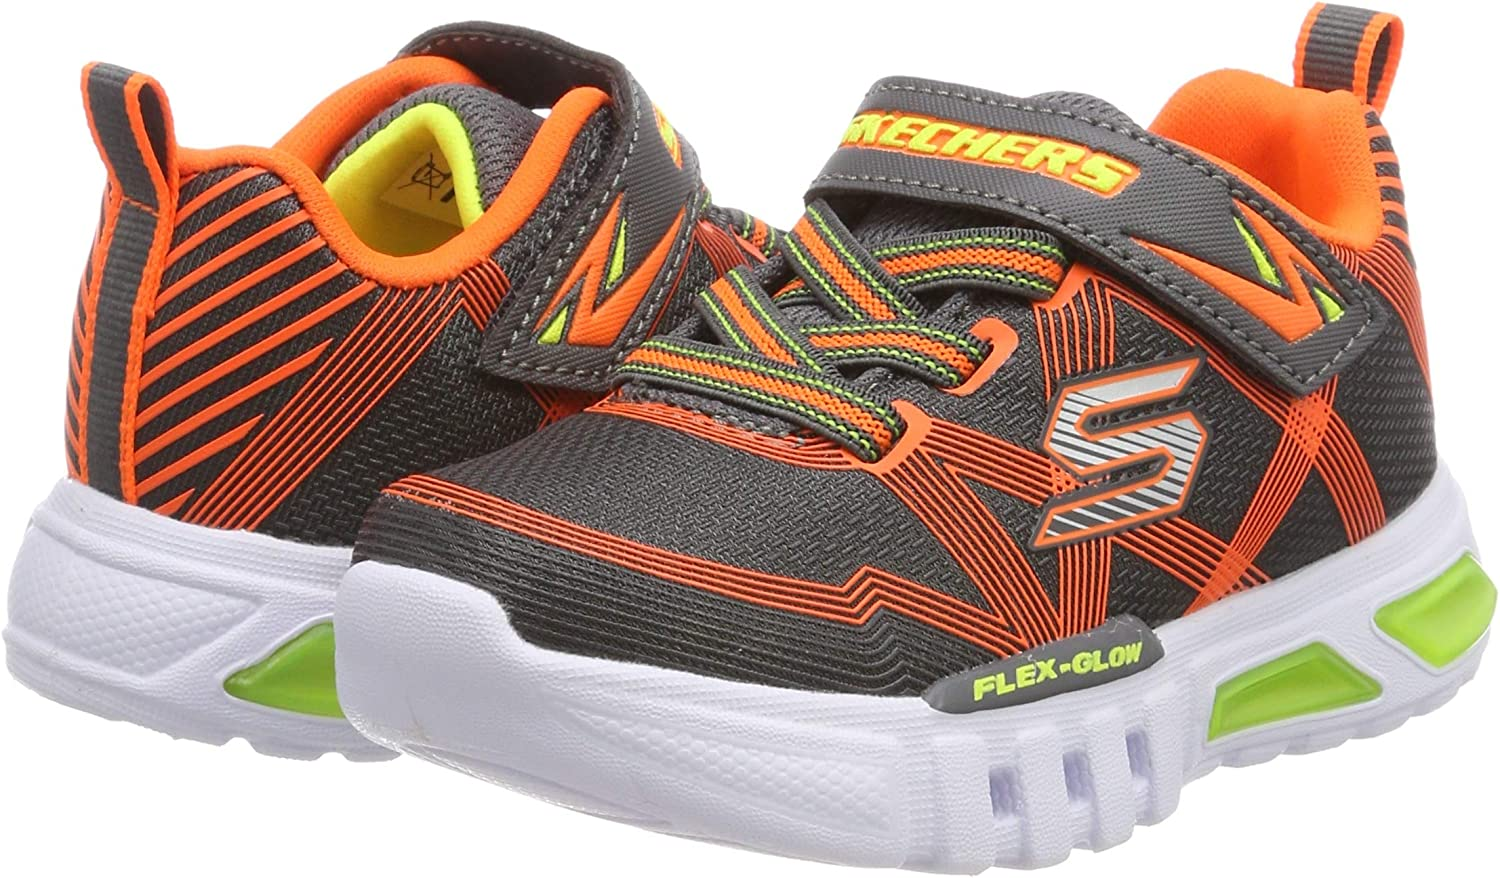 Skechers Kids Flex-Glow 90542n Lights Toddler